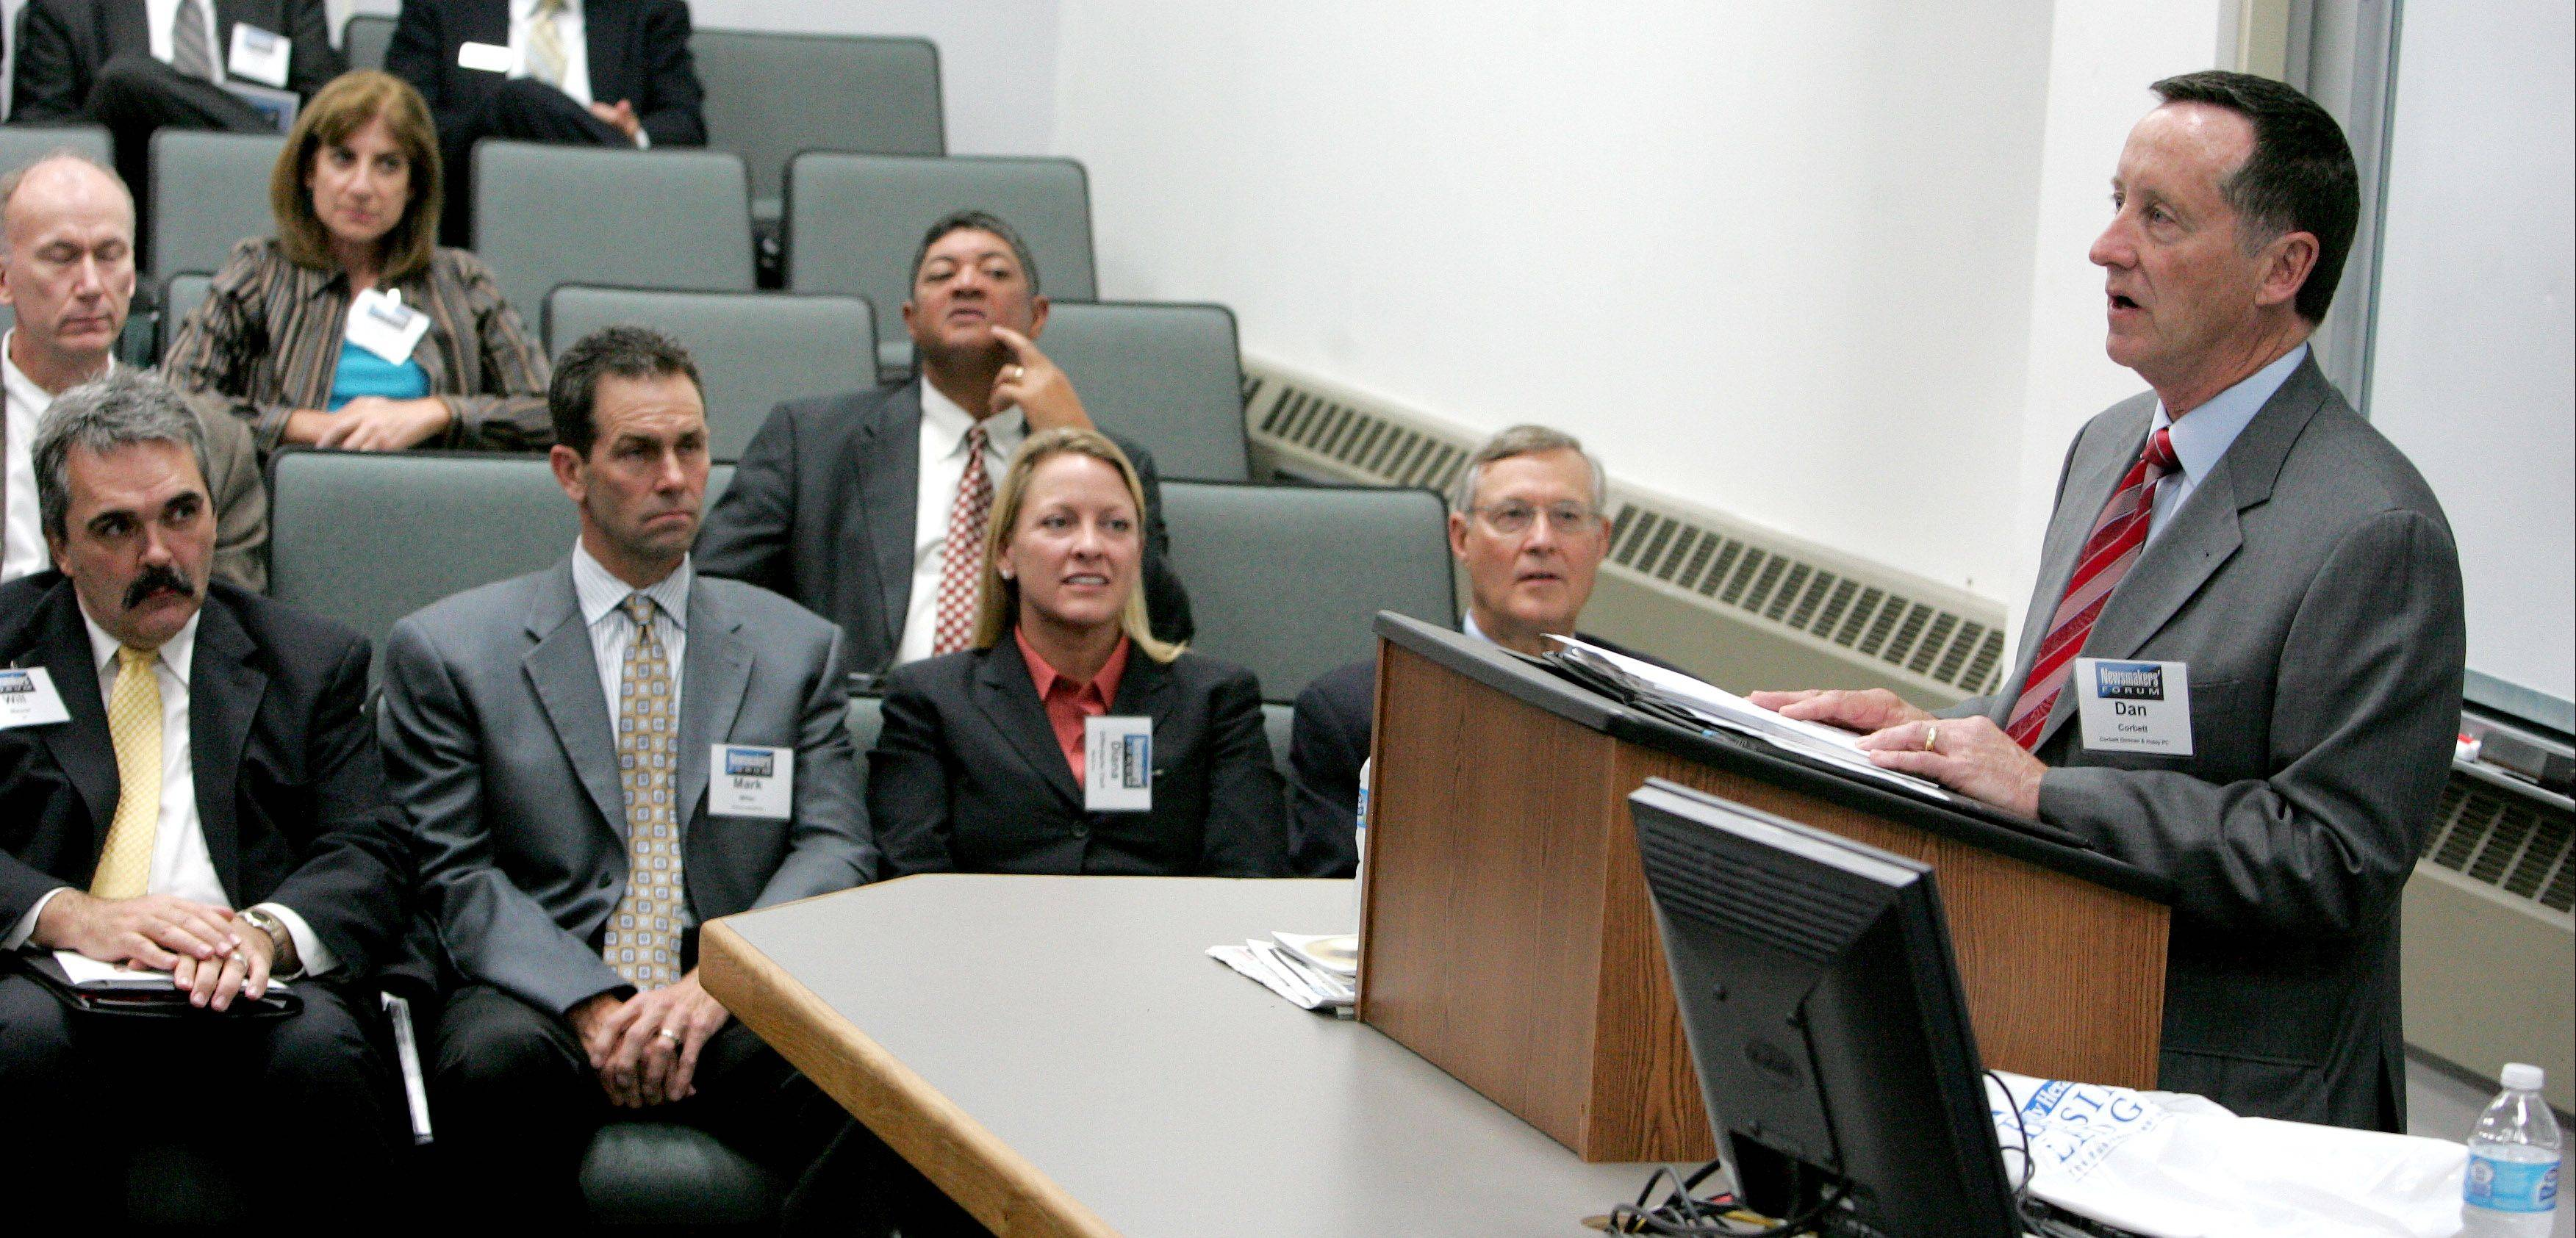 Daniel Corbett of Corbett, Duncan & Hubly PC, right, speaks at the Manufacturing and International Business Newsmakers� Forum at the Illinois Institute of Technology in Wheaton. Also on the panel were, from left, Will Mauer, Illinois Institute of Technology; Mark Miller, Prince Industries and Diana Diffendarfer Clark, Marsh Inc.